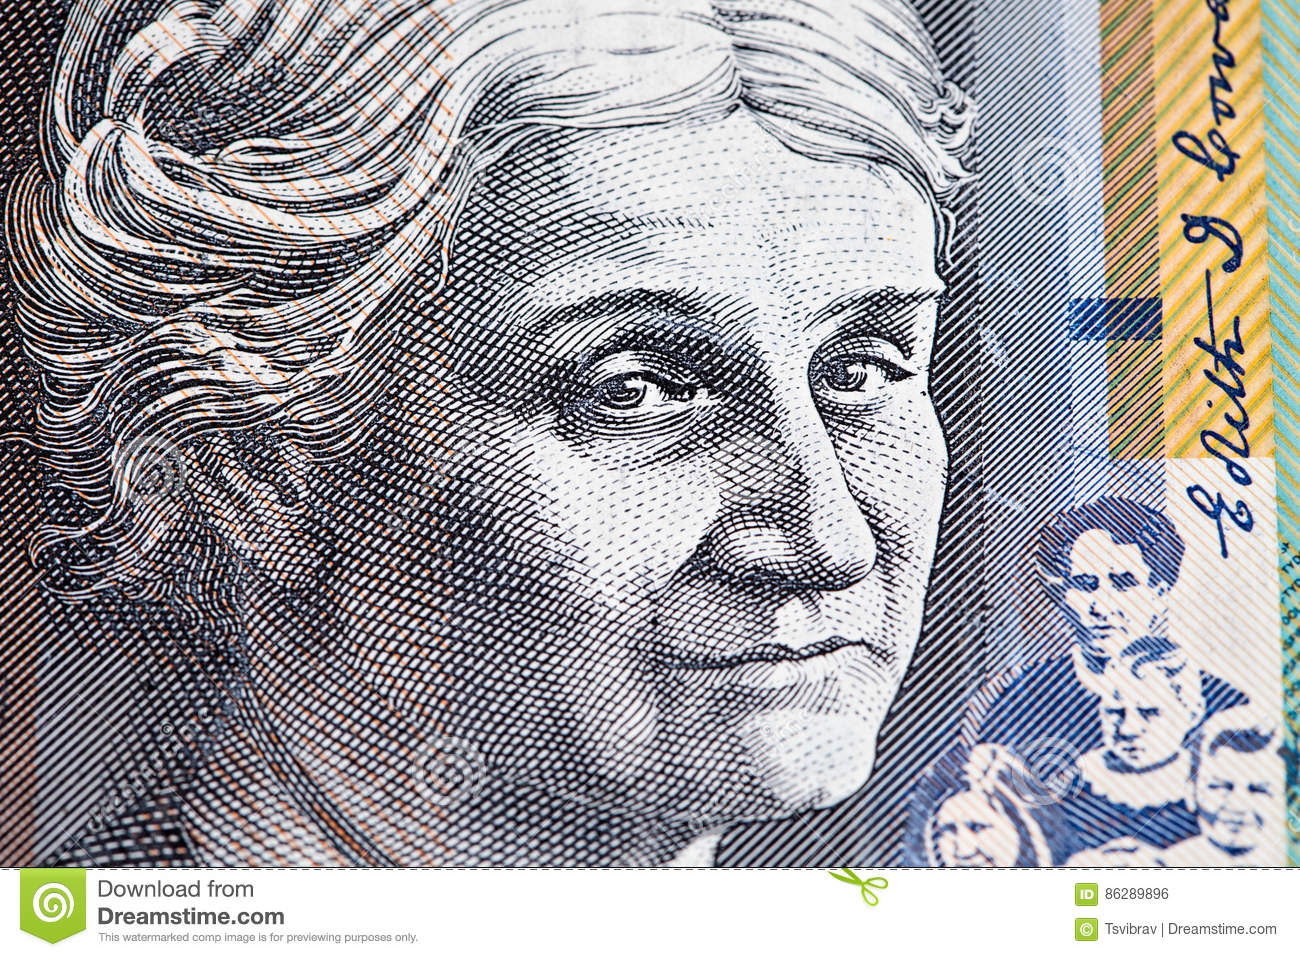 Portret van Edith Cowan - de Australische close-up van de 50 dollarrekening